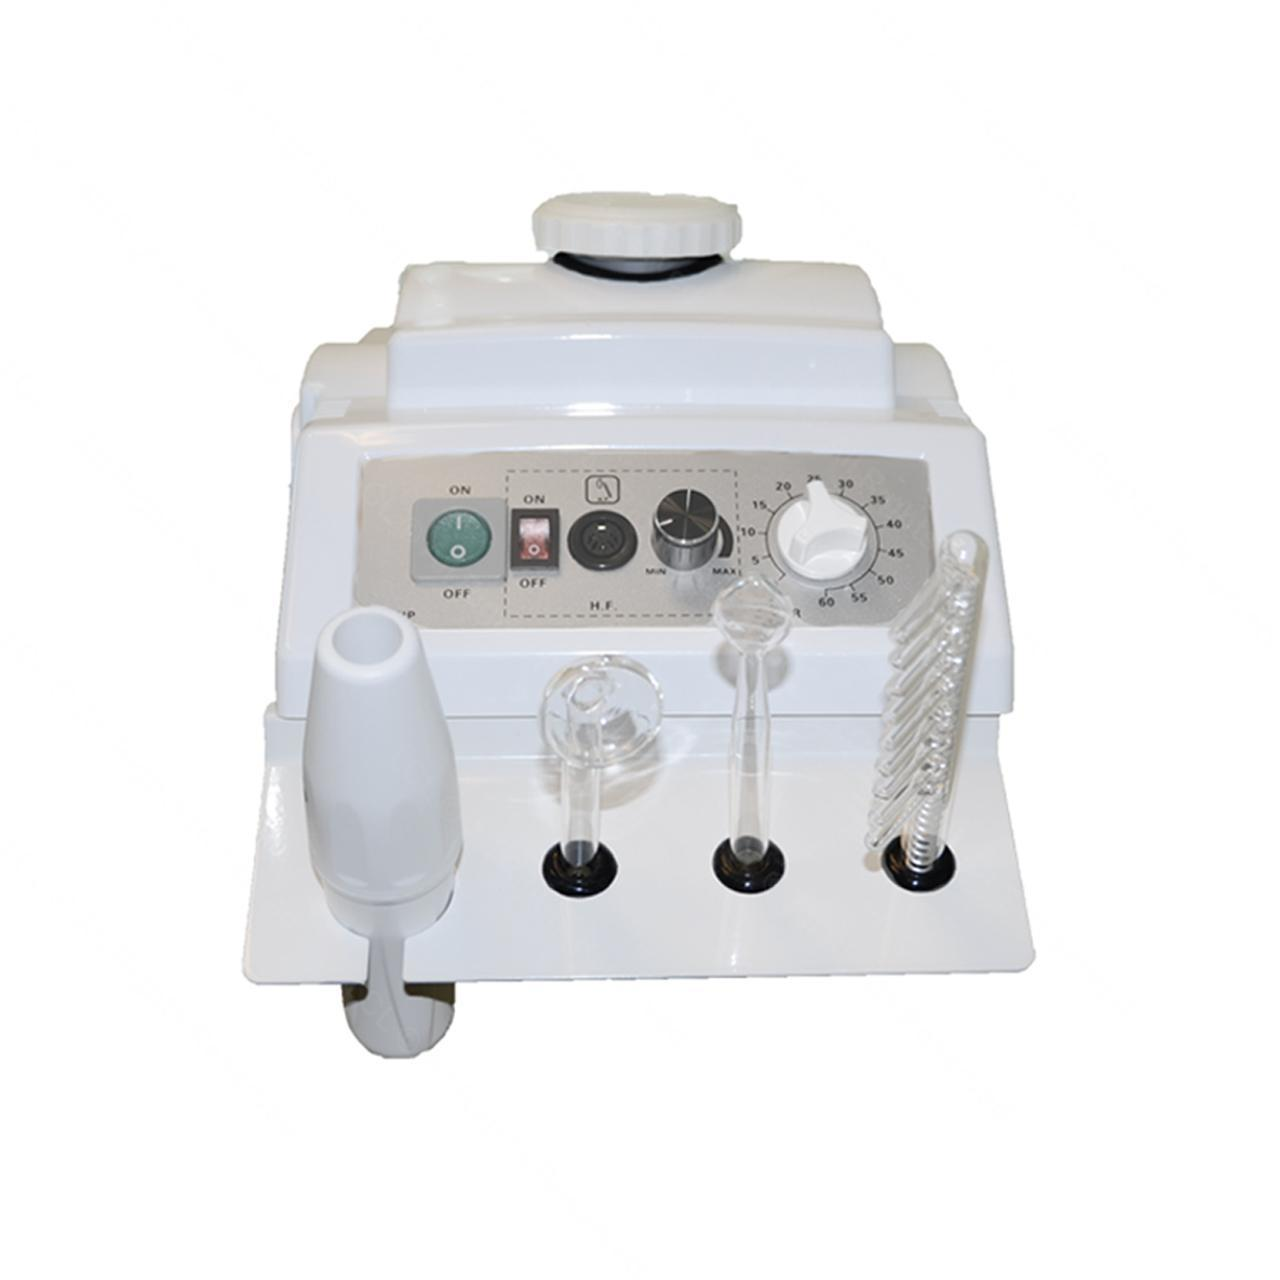 PRO-2277 2 in 1 Facial Steamer & High Frequency Facial Machine